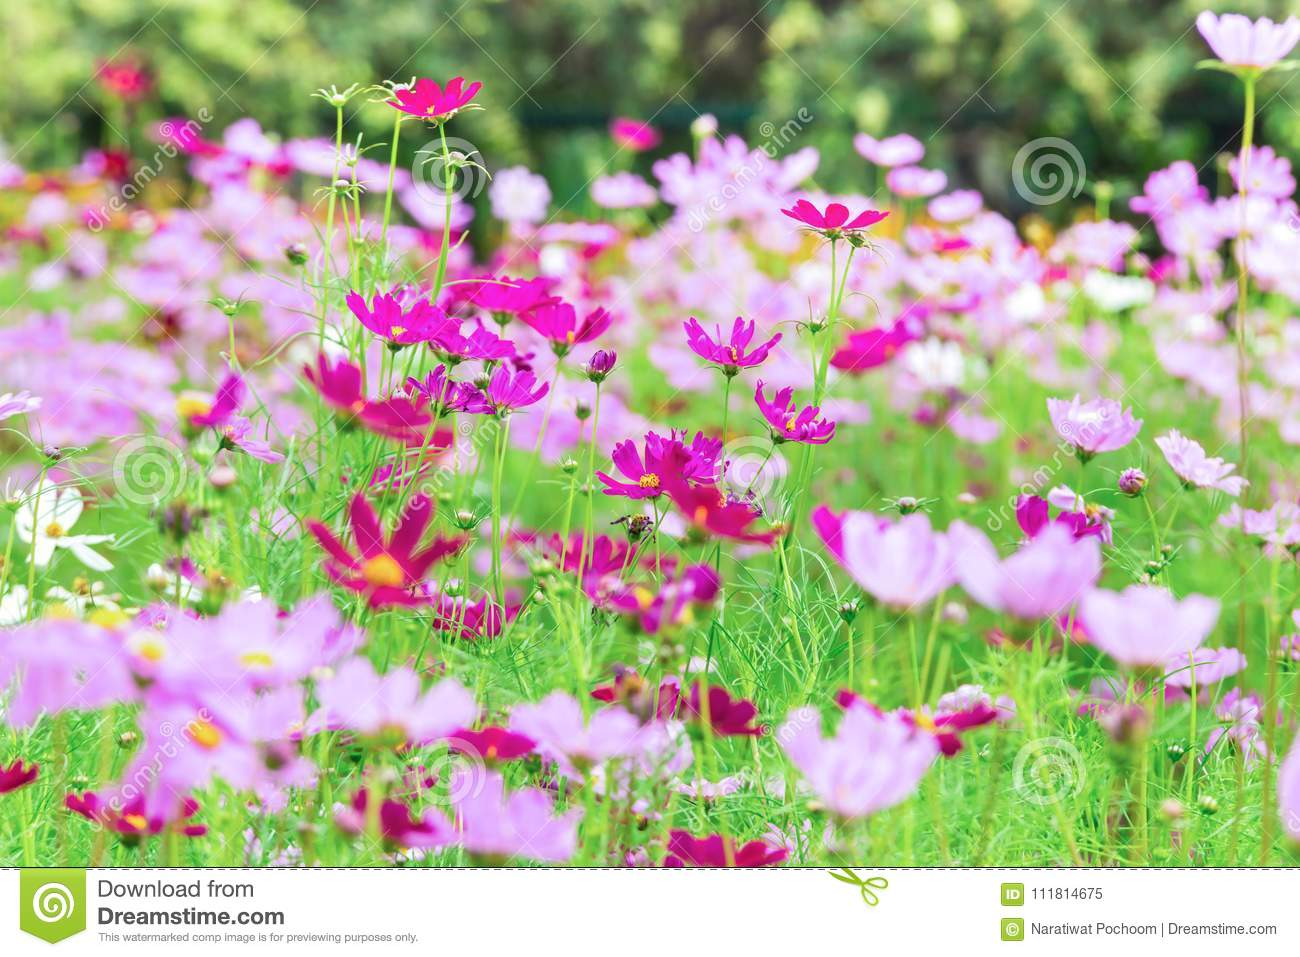 Pink and white cosmos flowers in garden beautiful flower stock pink and white cosmos flowers in garden beautiful flower landscape floral izmirmasajfo